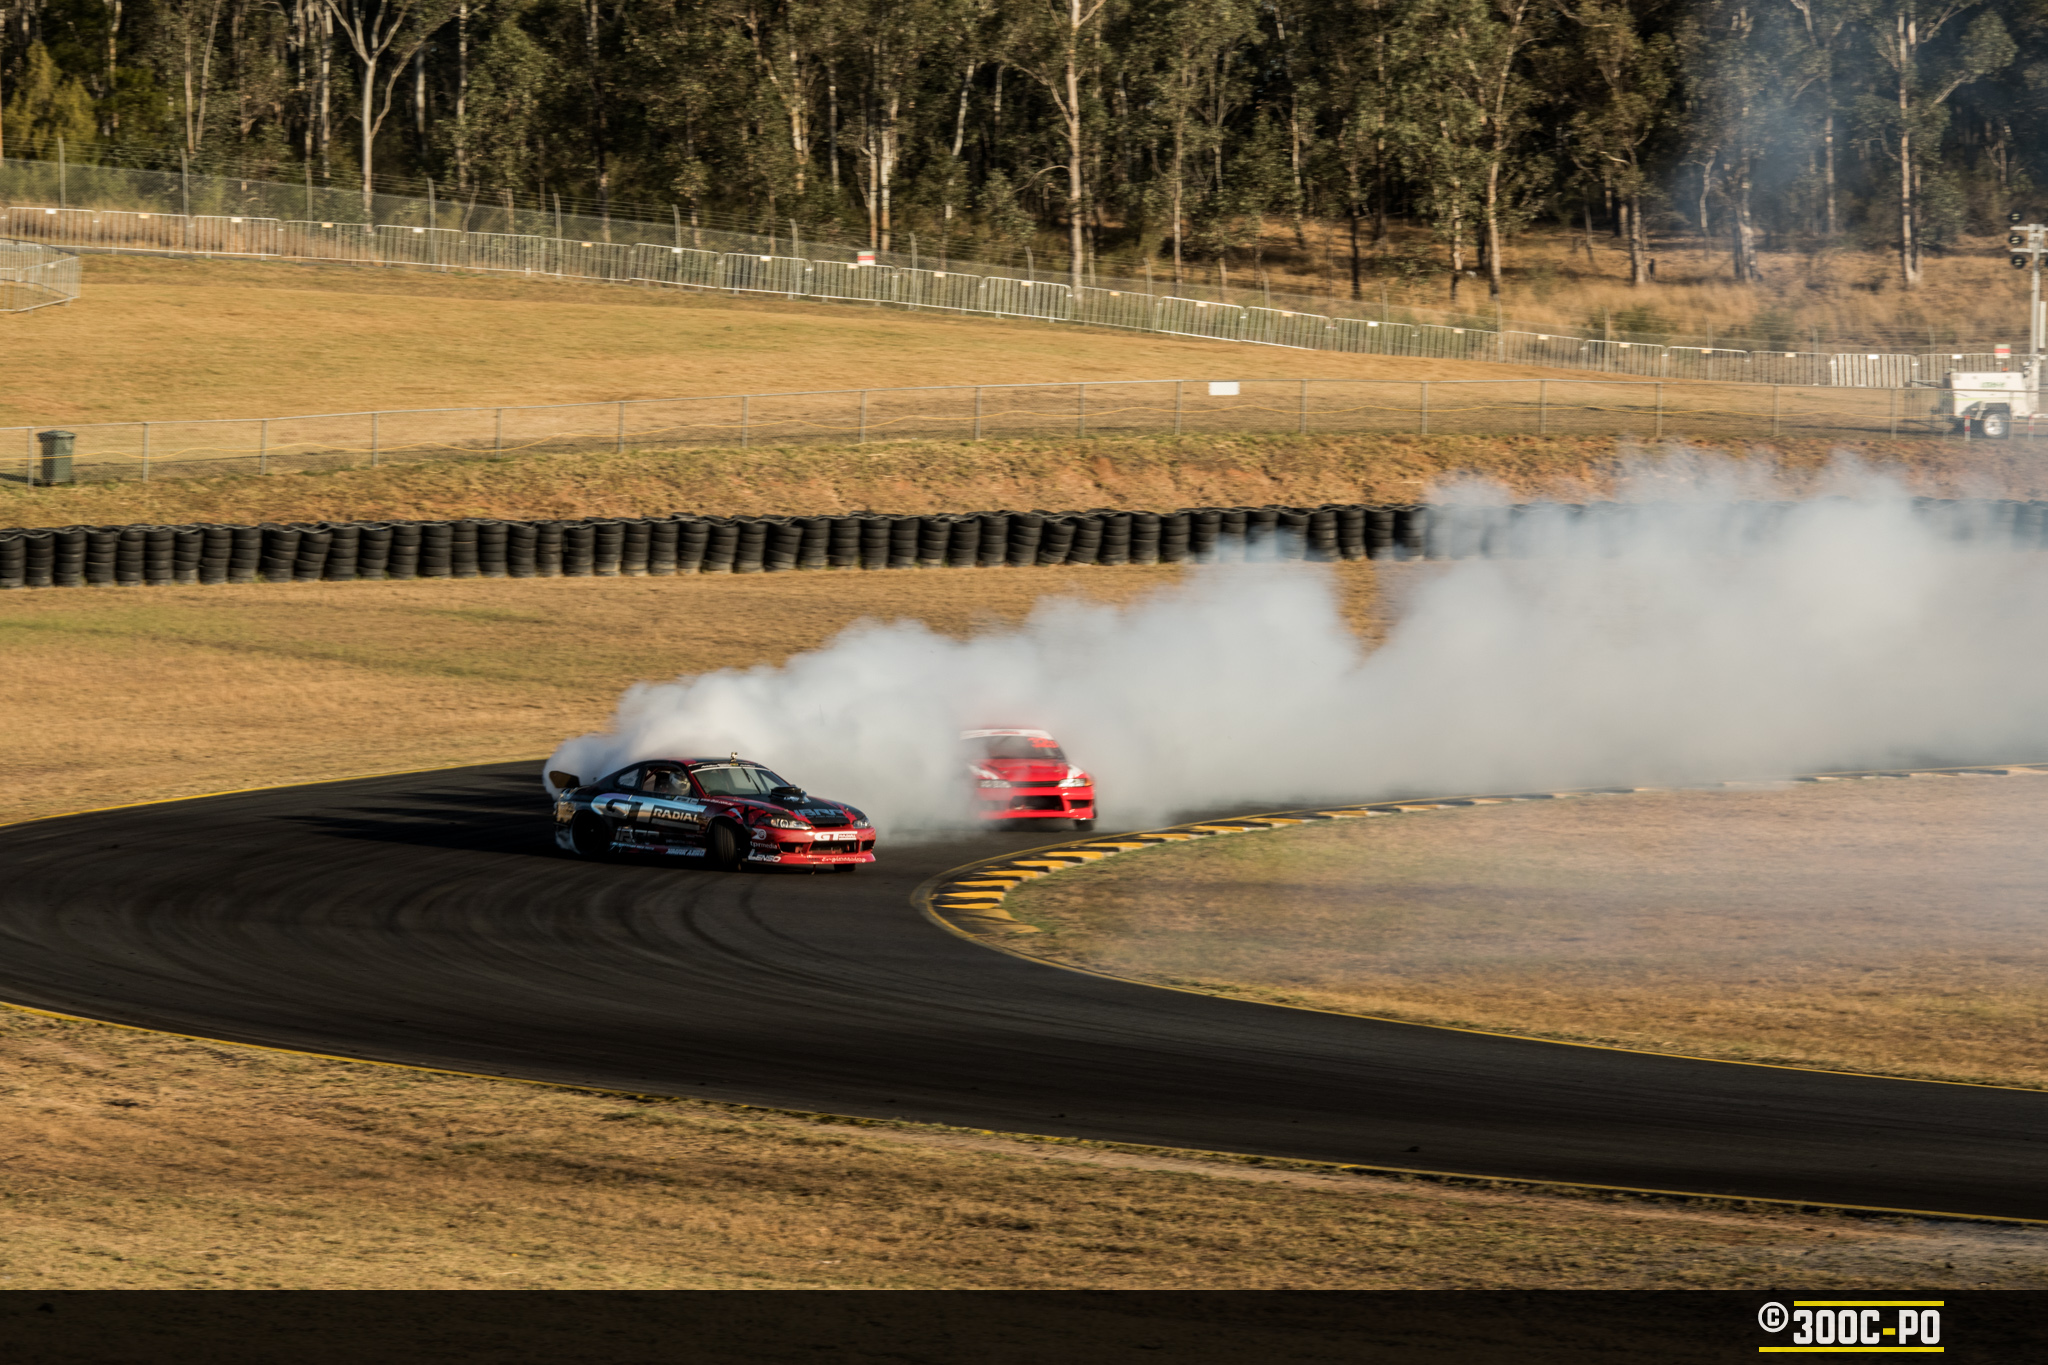 2017-10-12 - WTAC 2017 Test Day 099